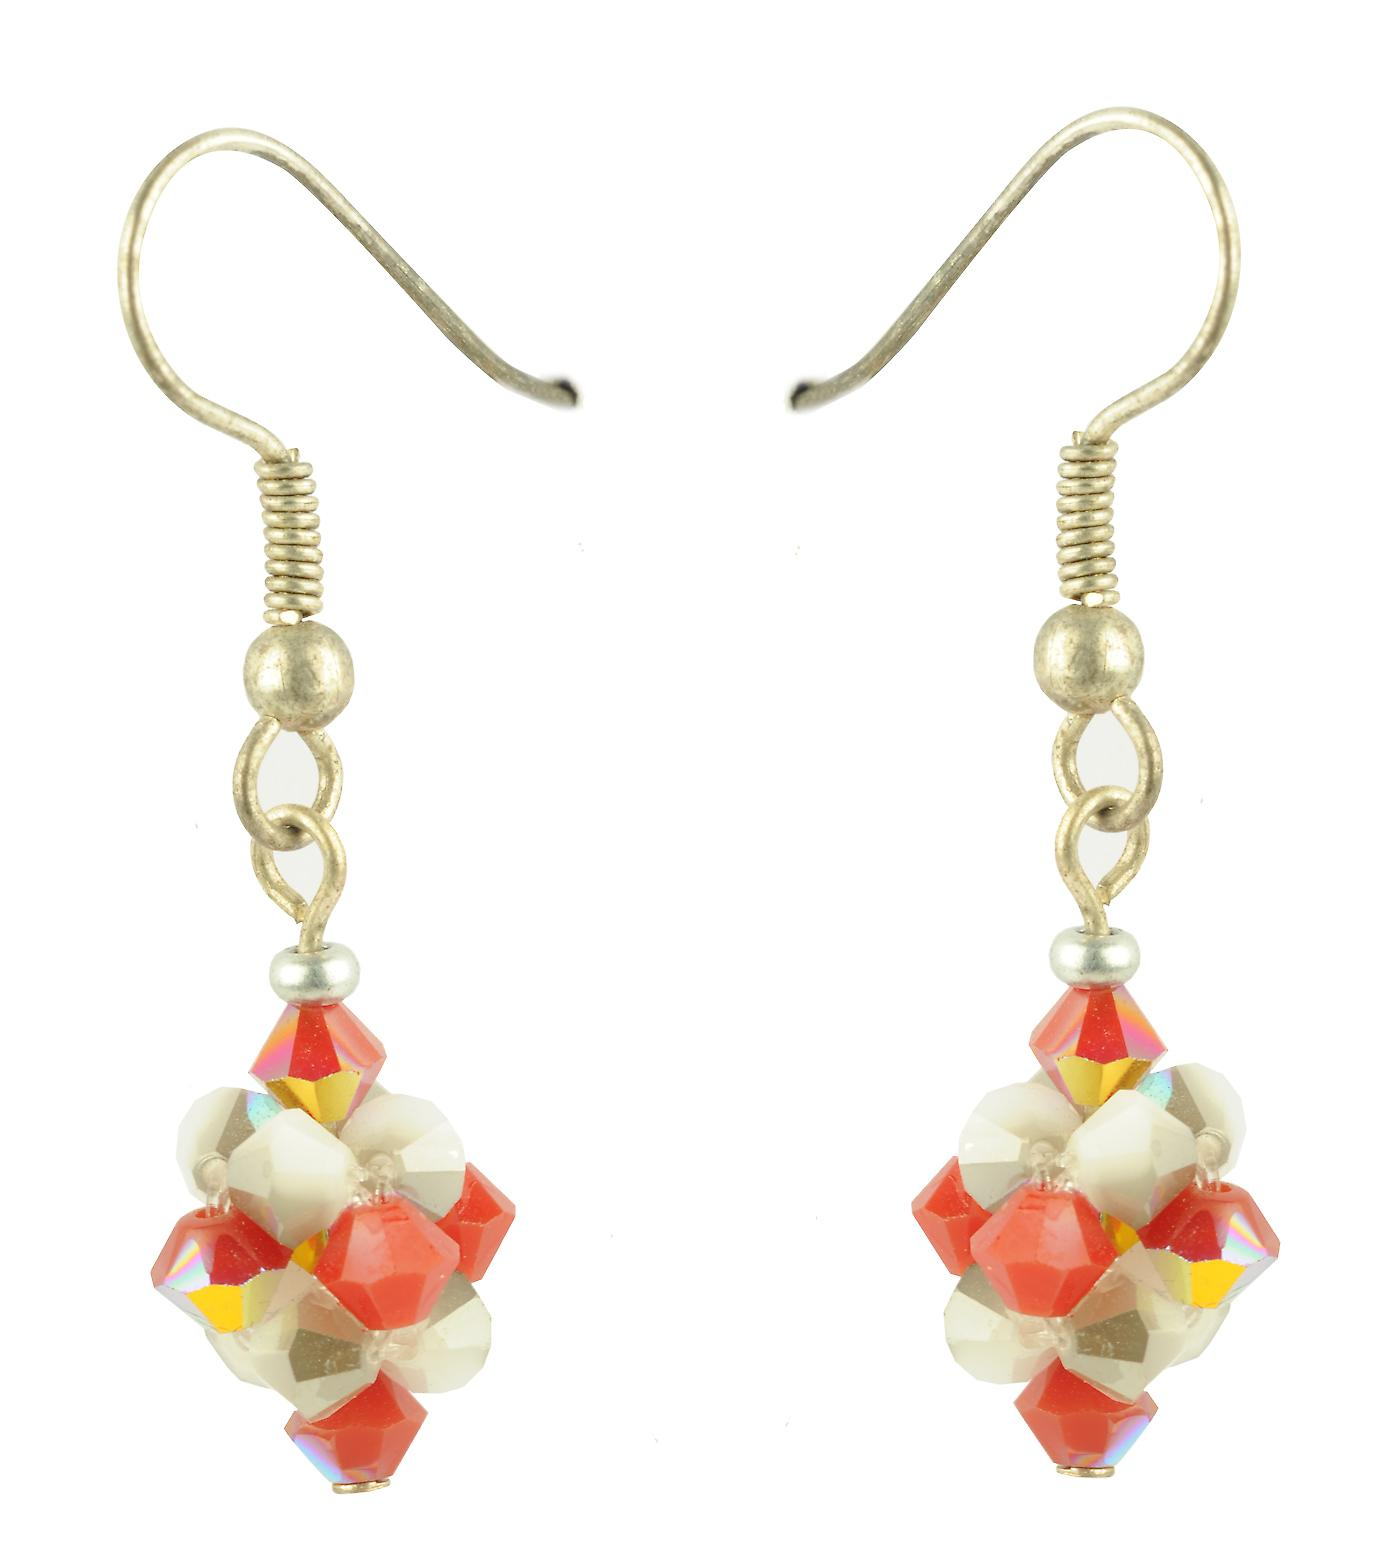 Waooh - jewelry - WJ0726 - earrings with Rhinestone Swarovski white red - mount silver